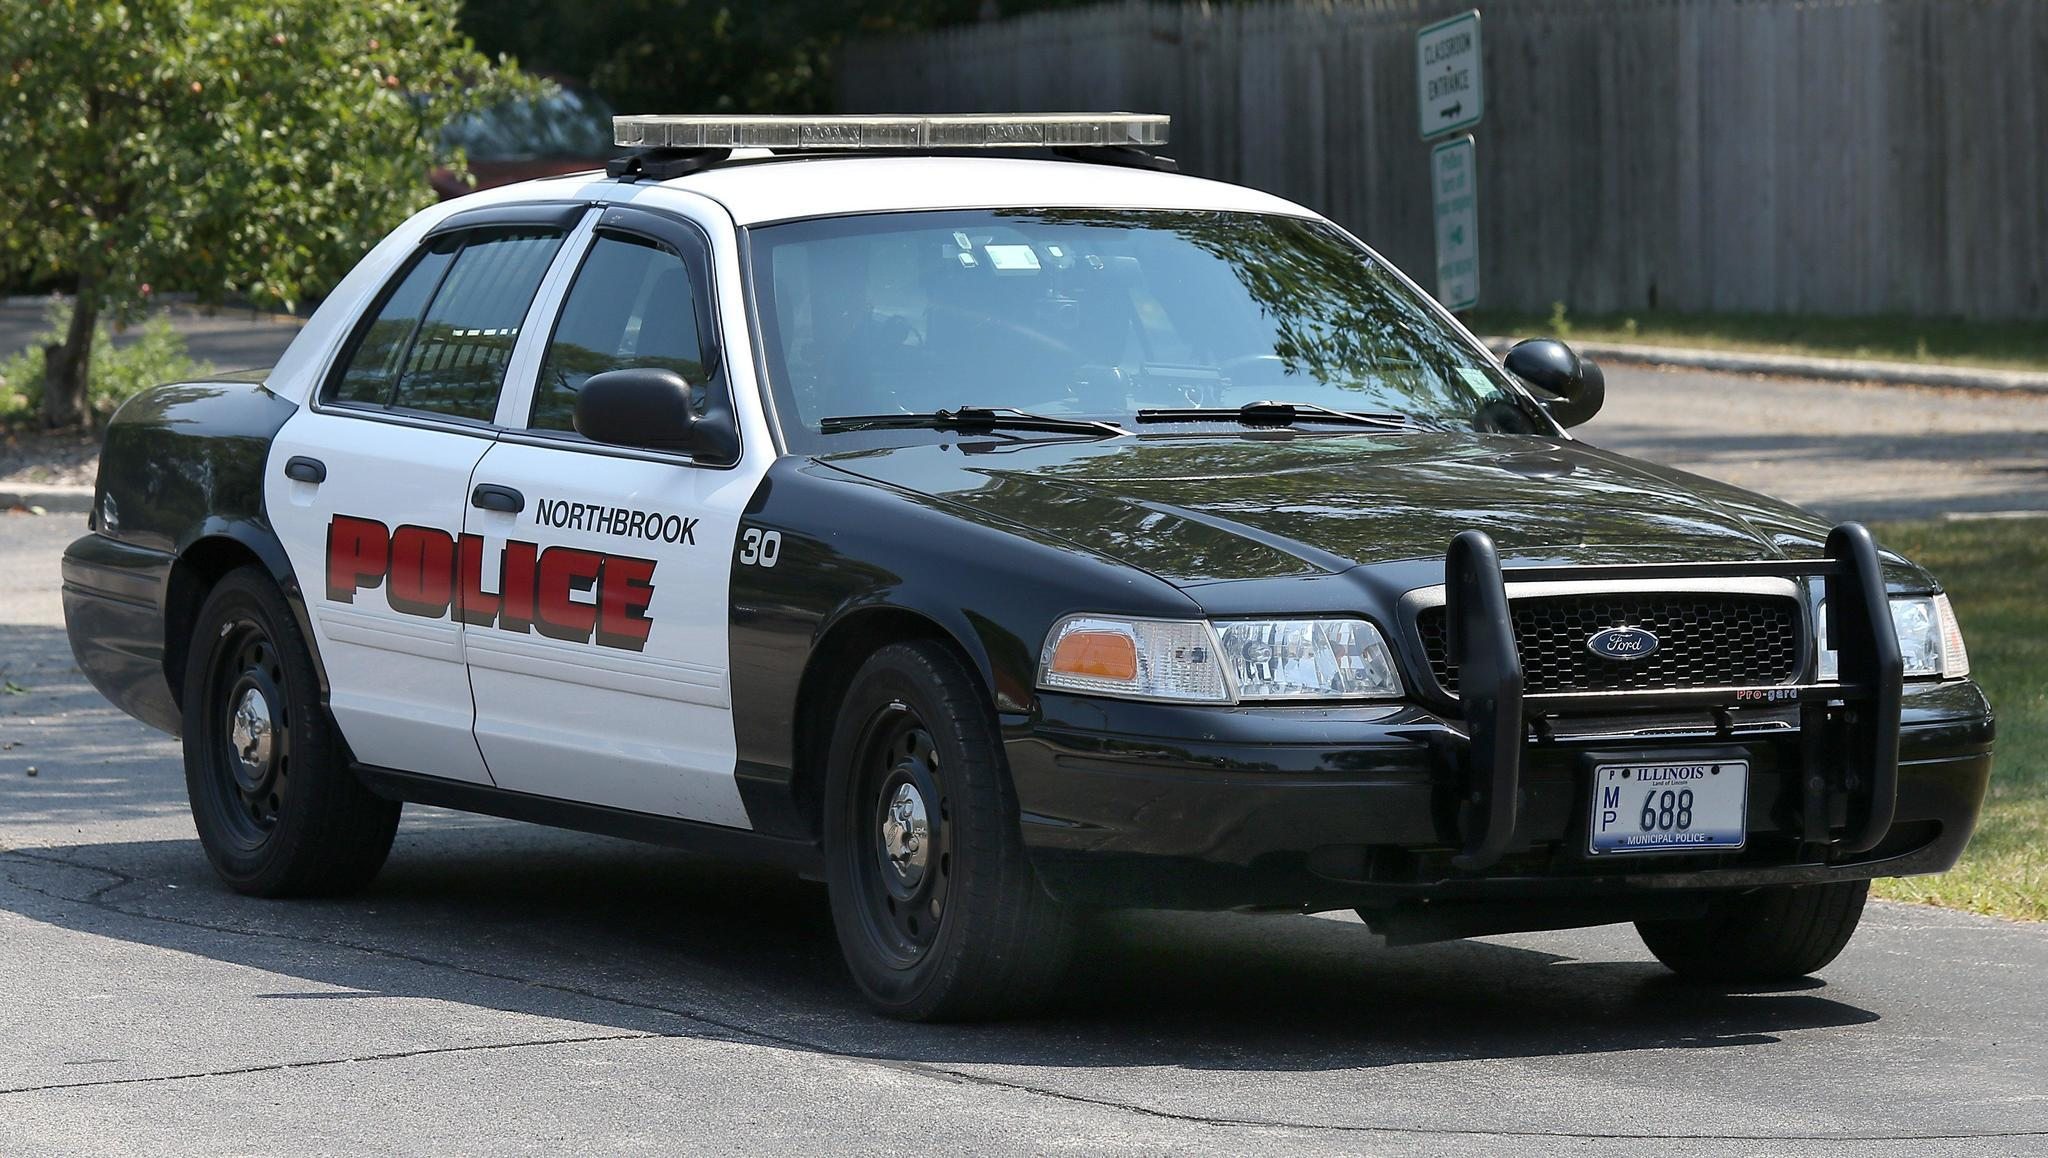 Northbrook Police Office Worker Reports Knife Point